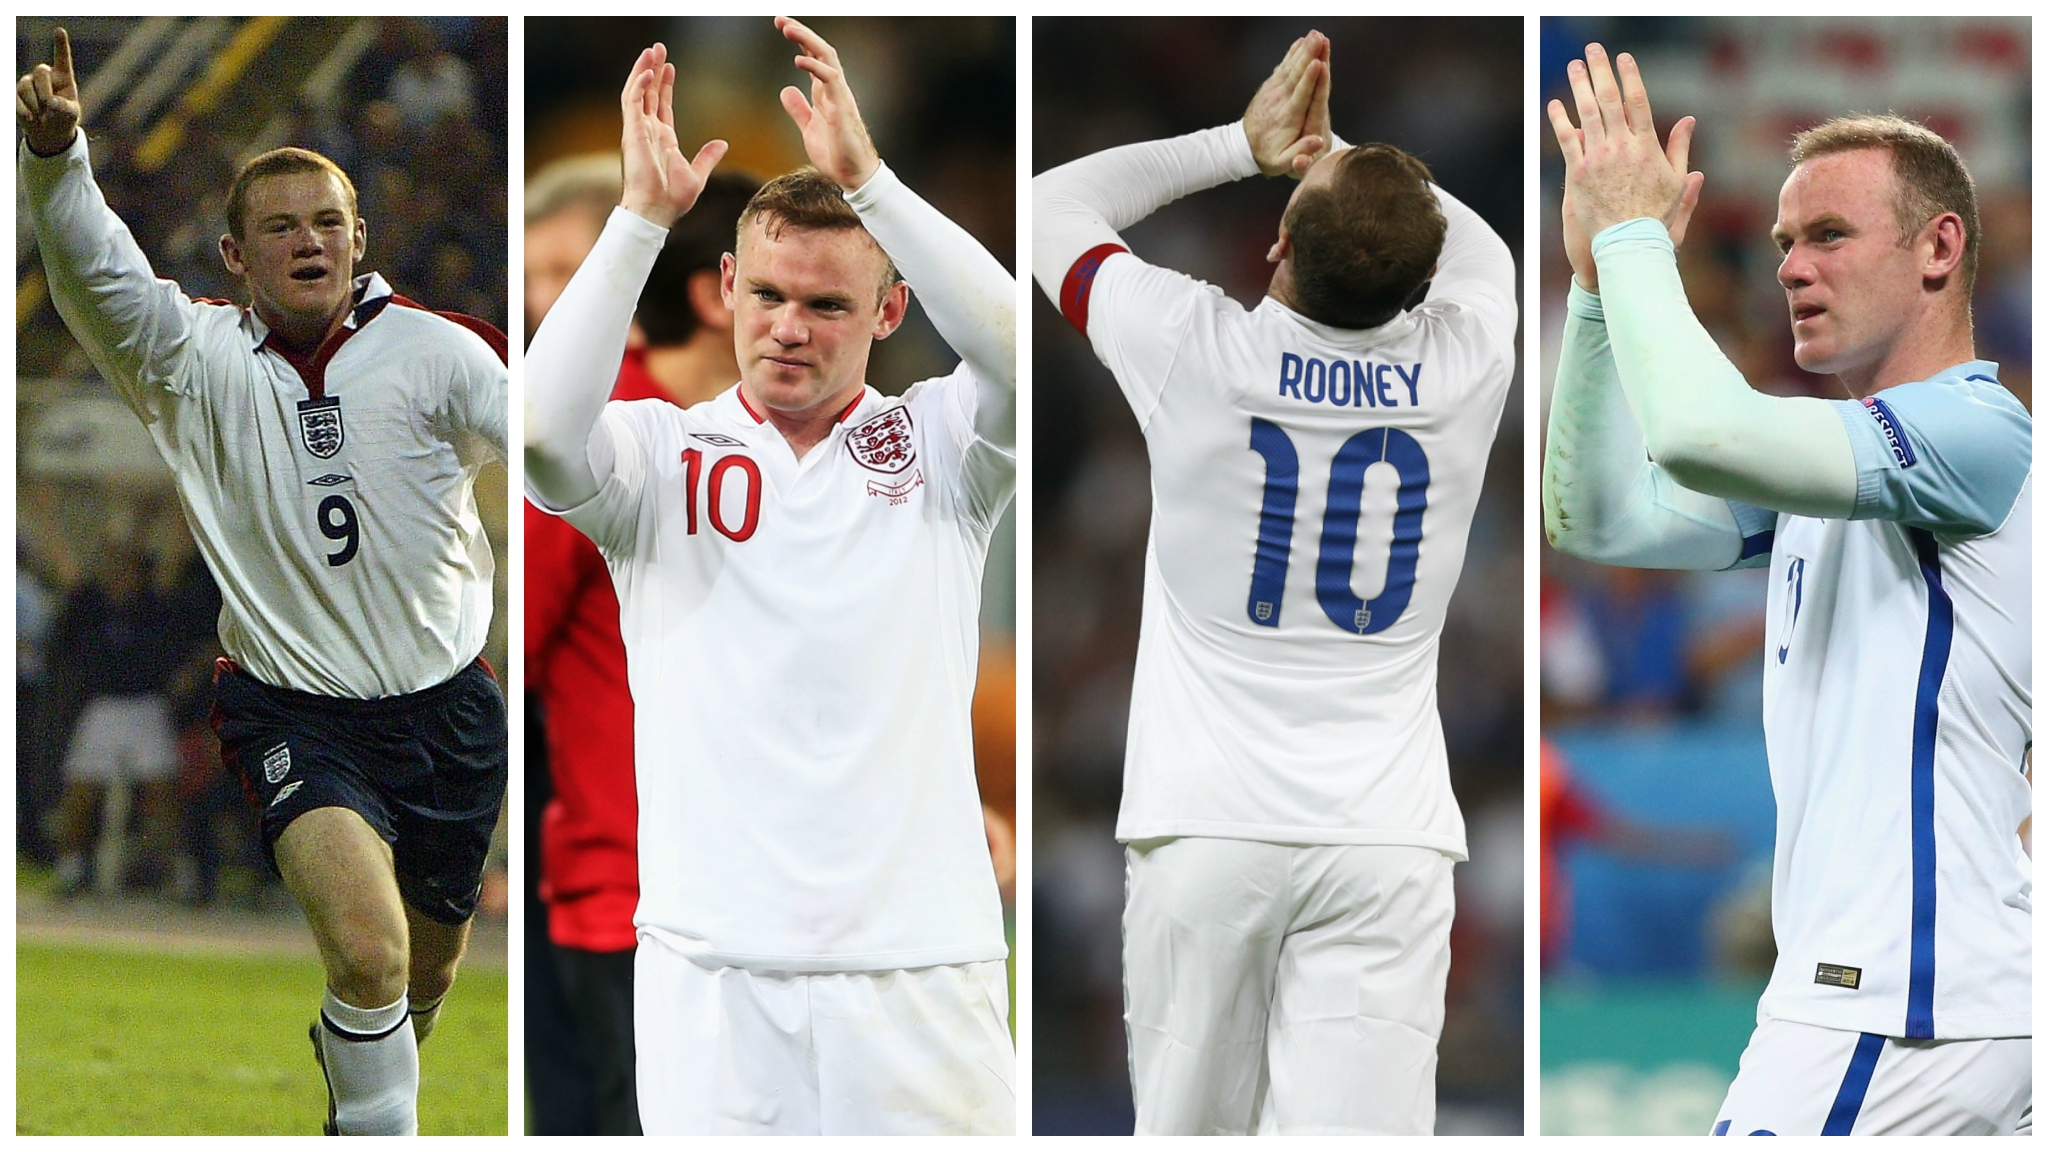 From expectation to frustration: How will history judge Rooney's England career?